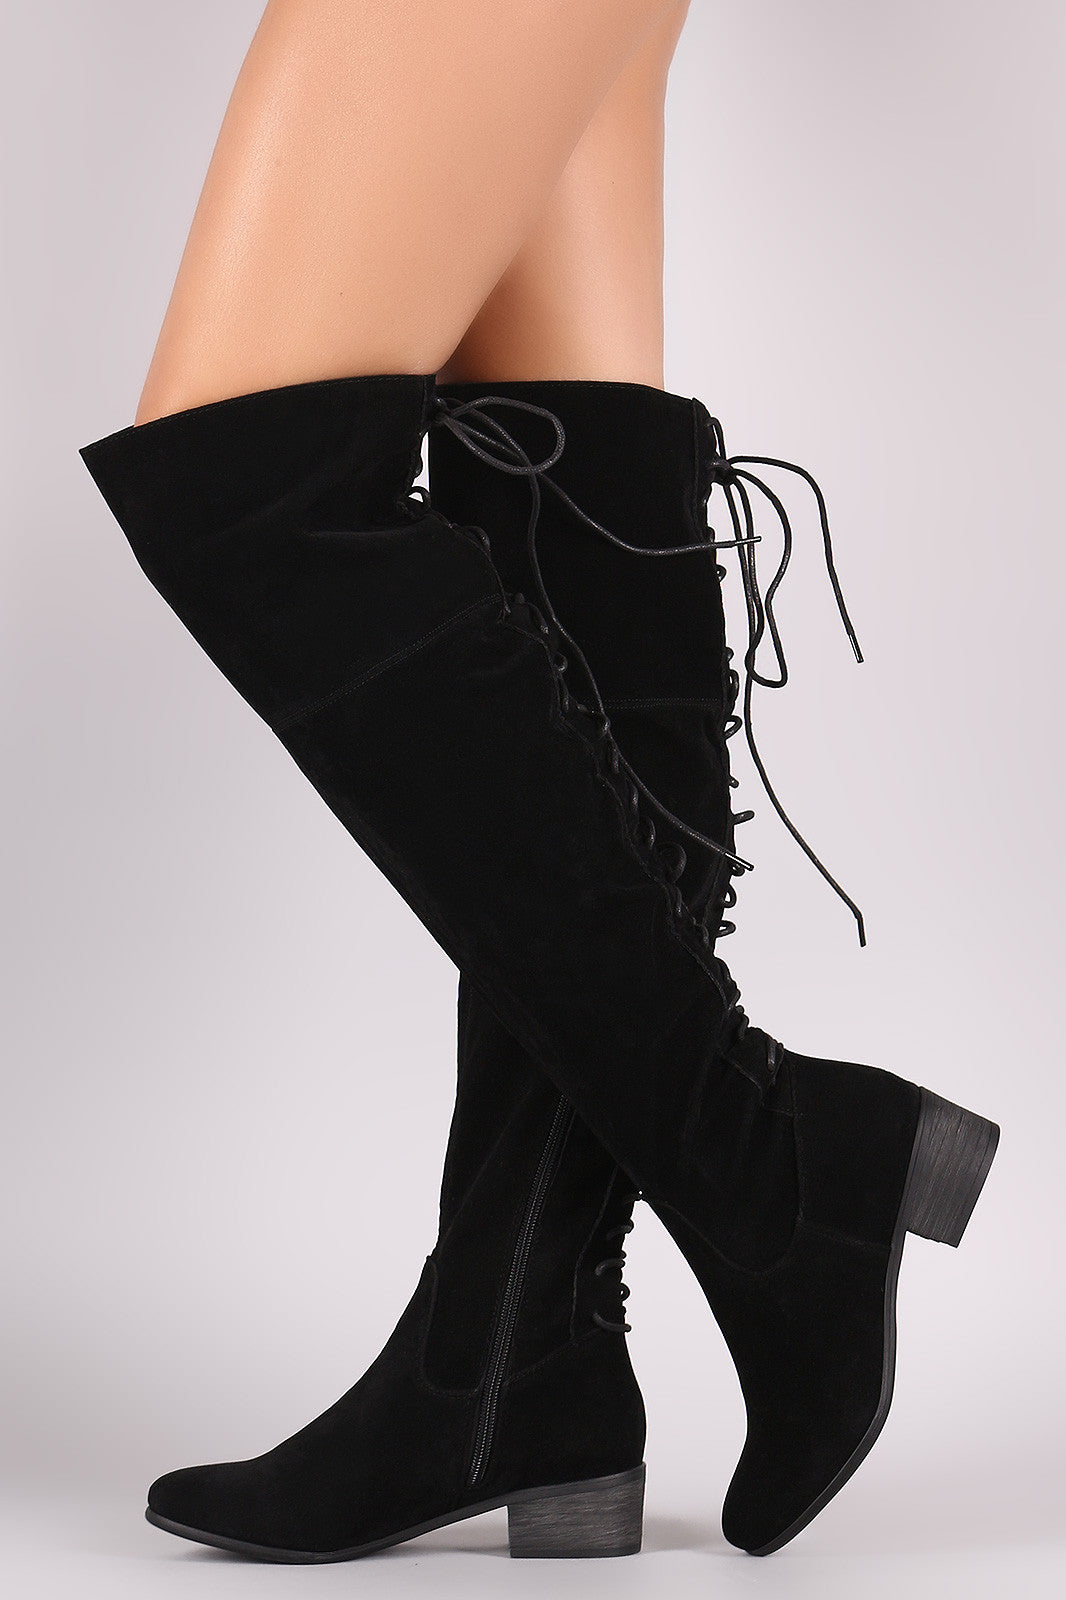 Maeve Lave Up Back Boots - Black - Hapa Clothing - 5